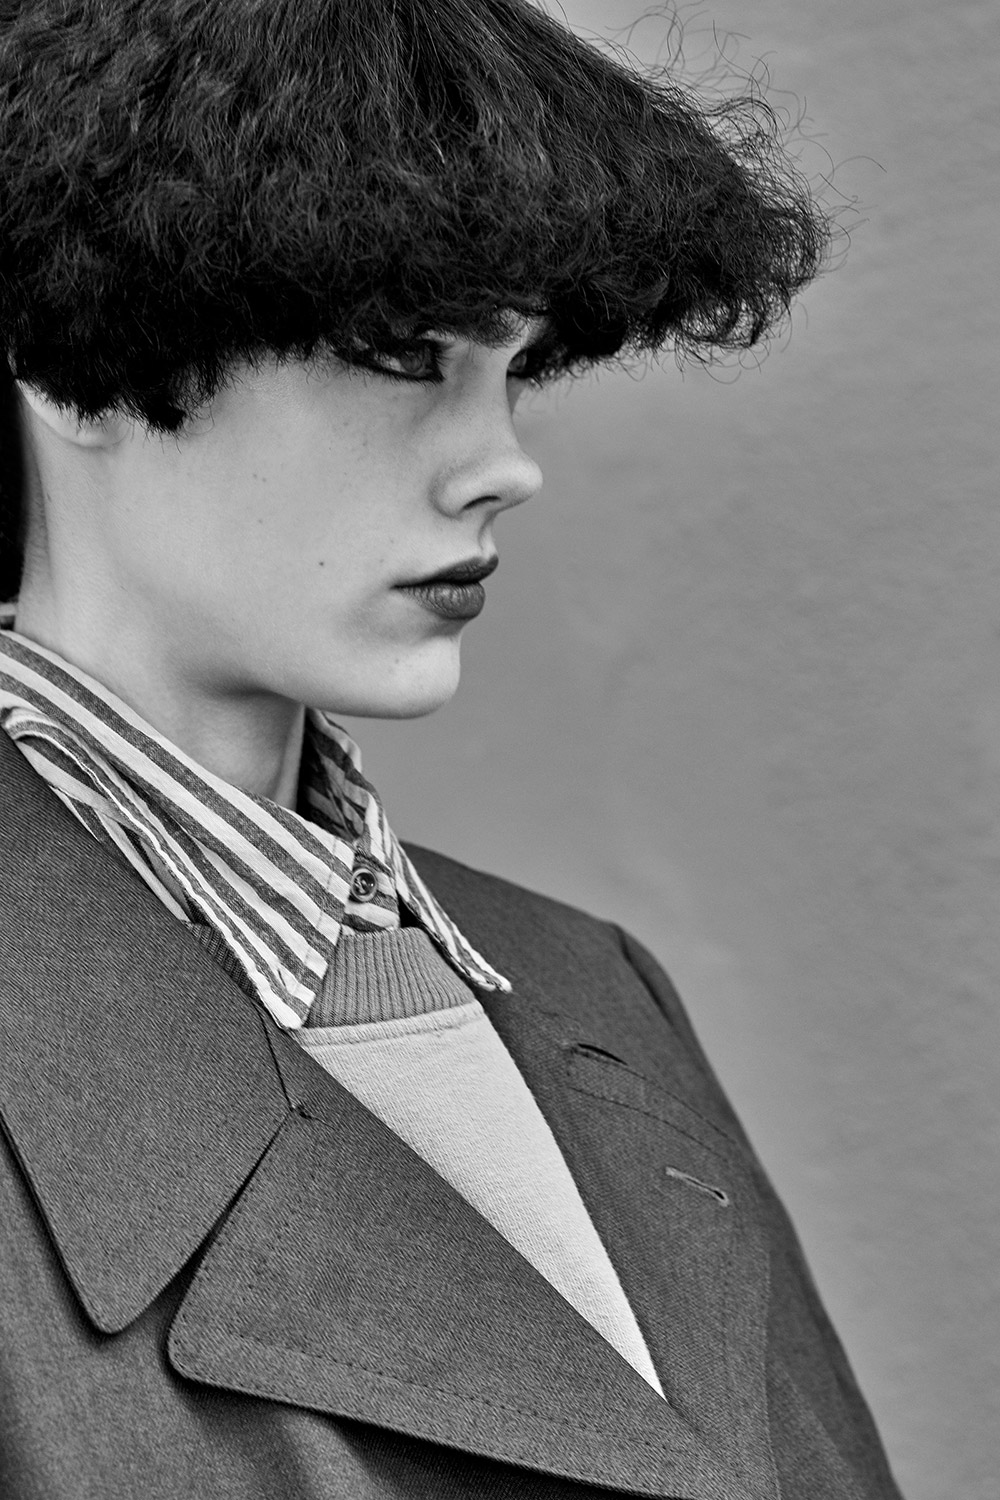 Collier Schorr for Dazed And Confused